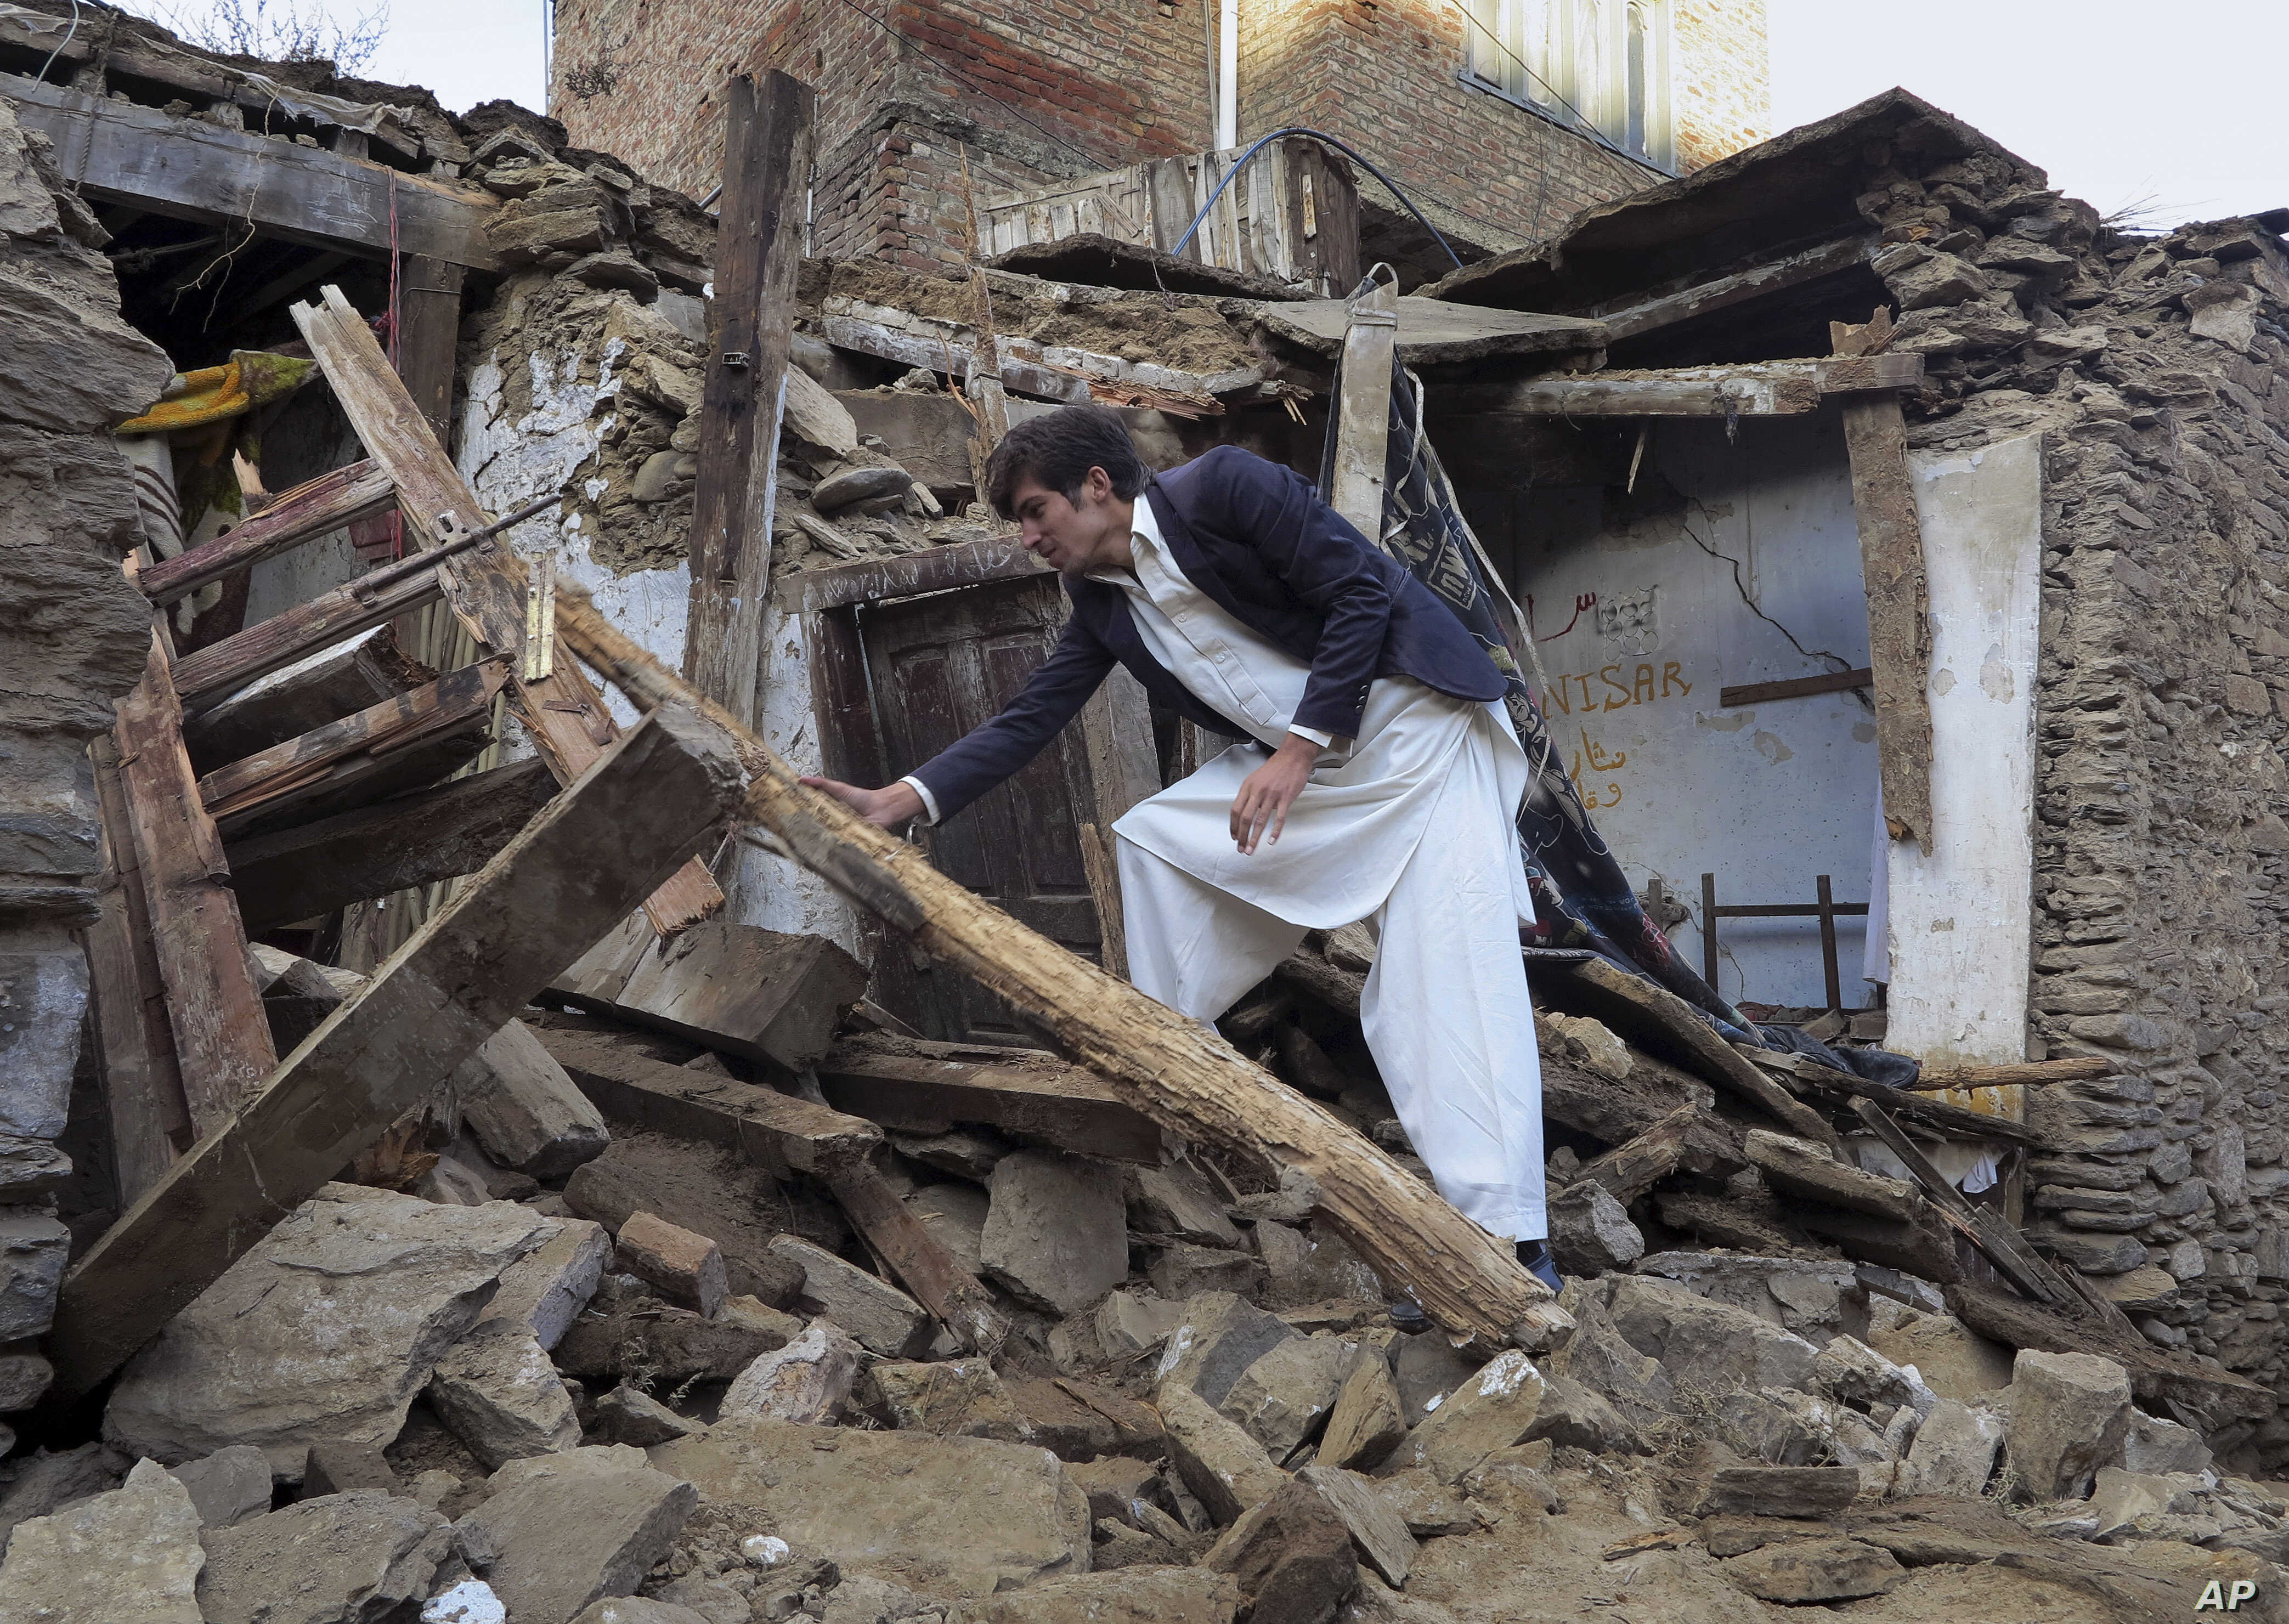 A Pakistani boy examines an earthquake-damaged house in Mingora, the main town of Swat valley, Oct. 27, 2015.